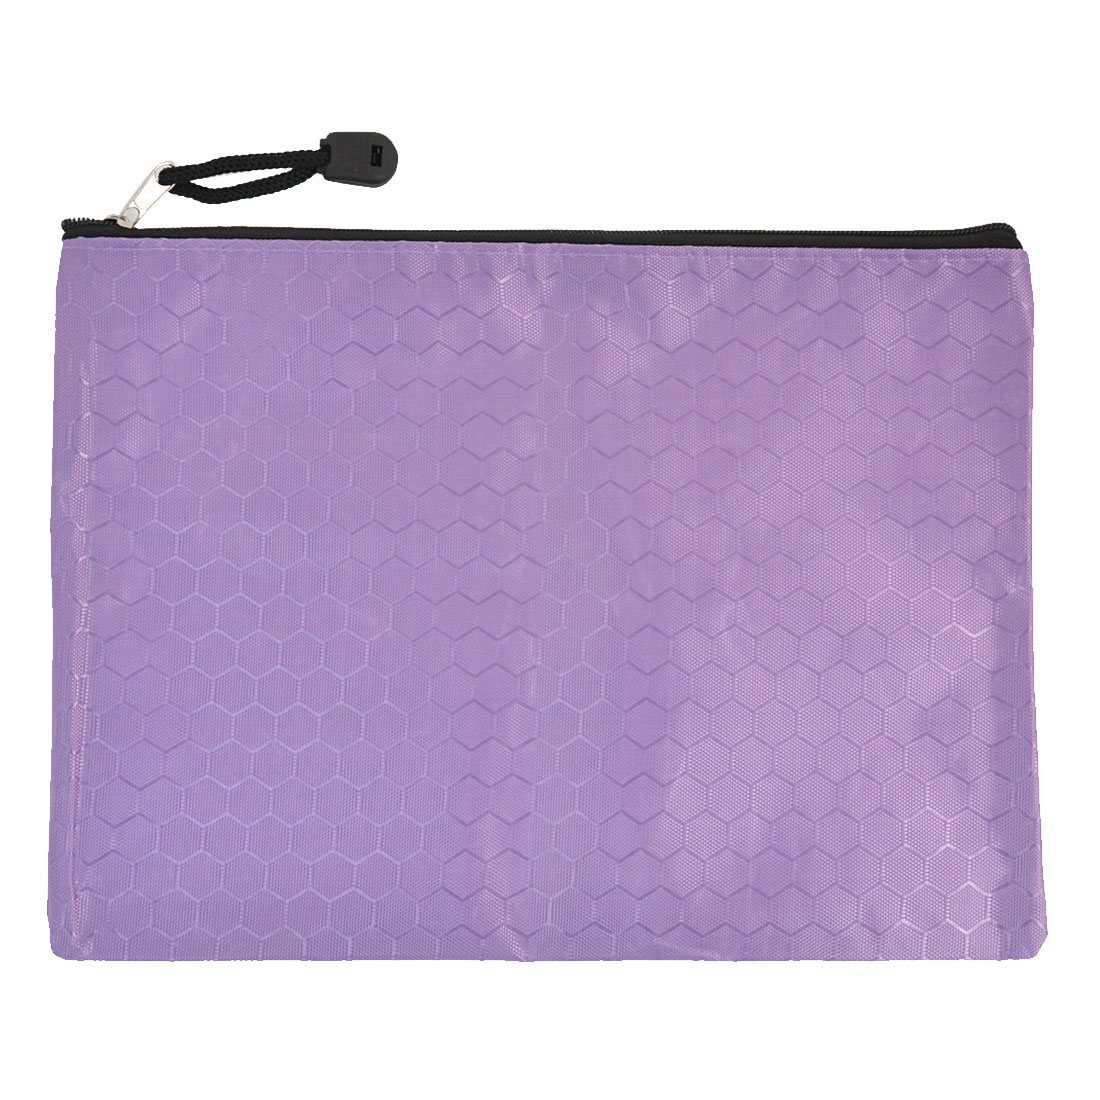 Hexagon Printed Zipper Closure A5 Papers Files Storage Bag Holder Purple